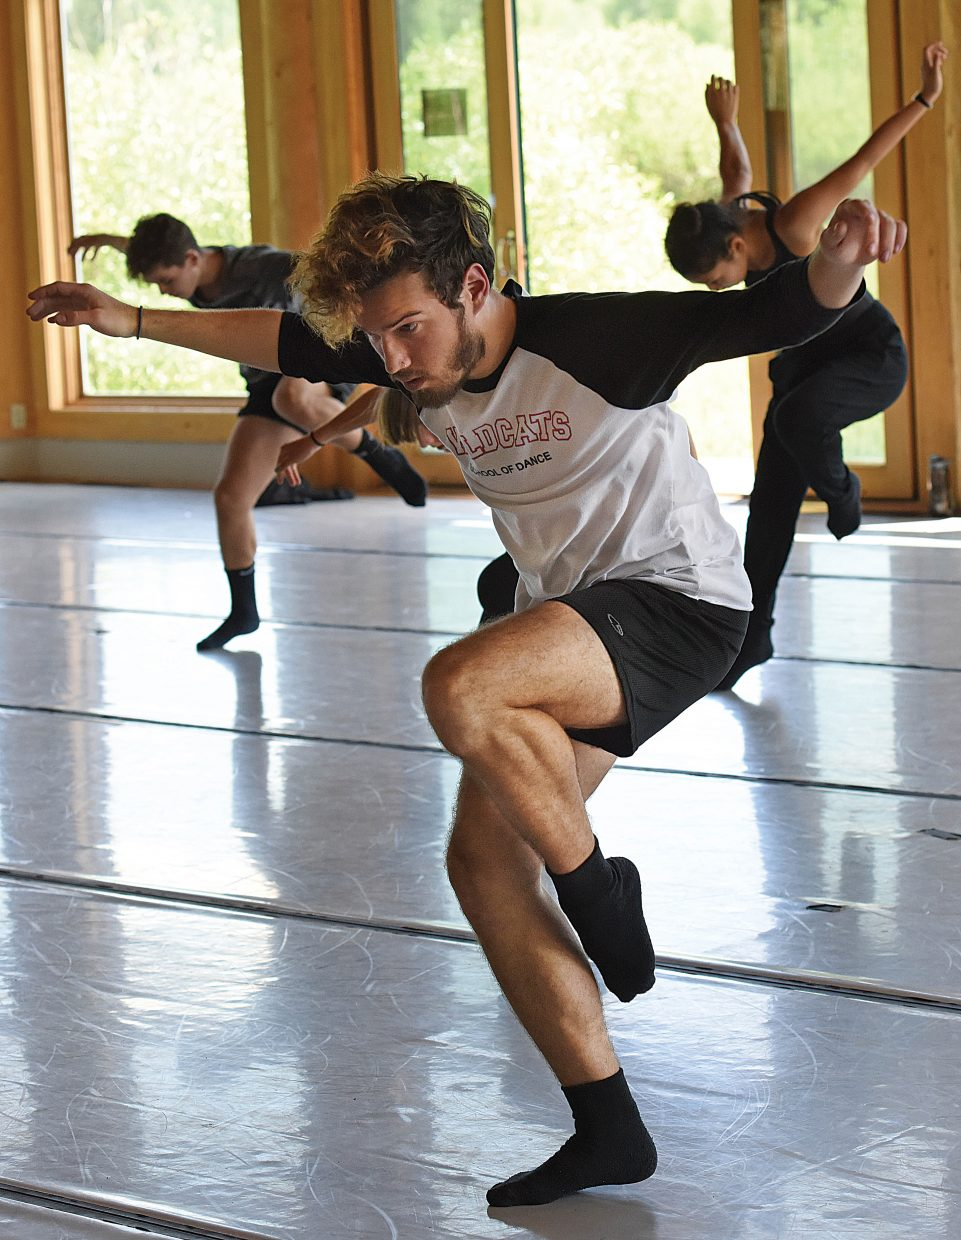 Dancer Ryan Dervin, middle, works through a routine with choreographer Yin Yue during a class of pre-professional dancers at the Perry-Mansfield Performing Arts School and Camp Tuesday. The group will take part in the First Friday Artwalk for the first time, with different groups performing live at six different locations on Lincoln Avenue from 5 to 8 p.m.